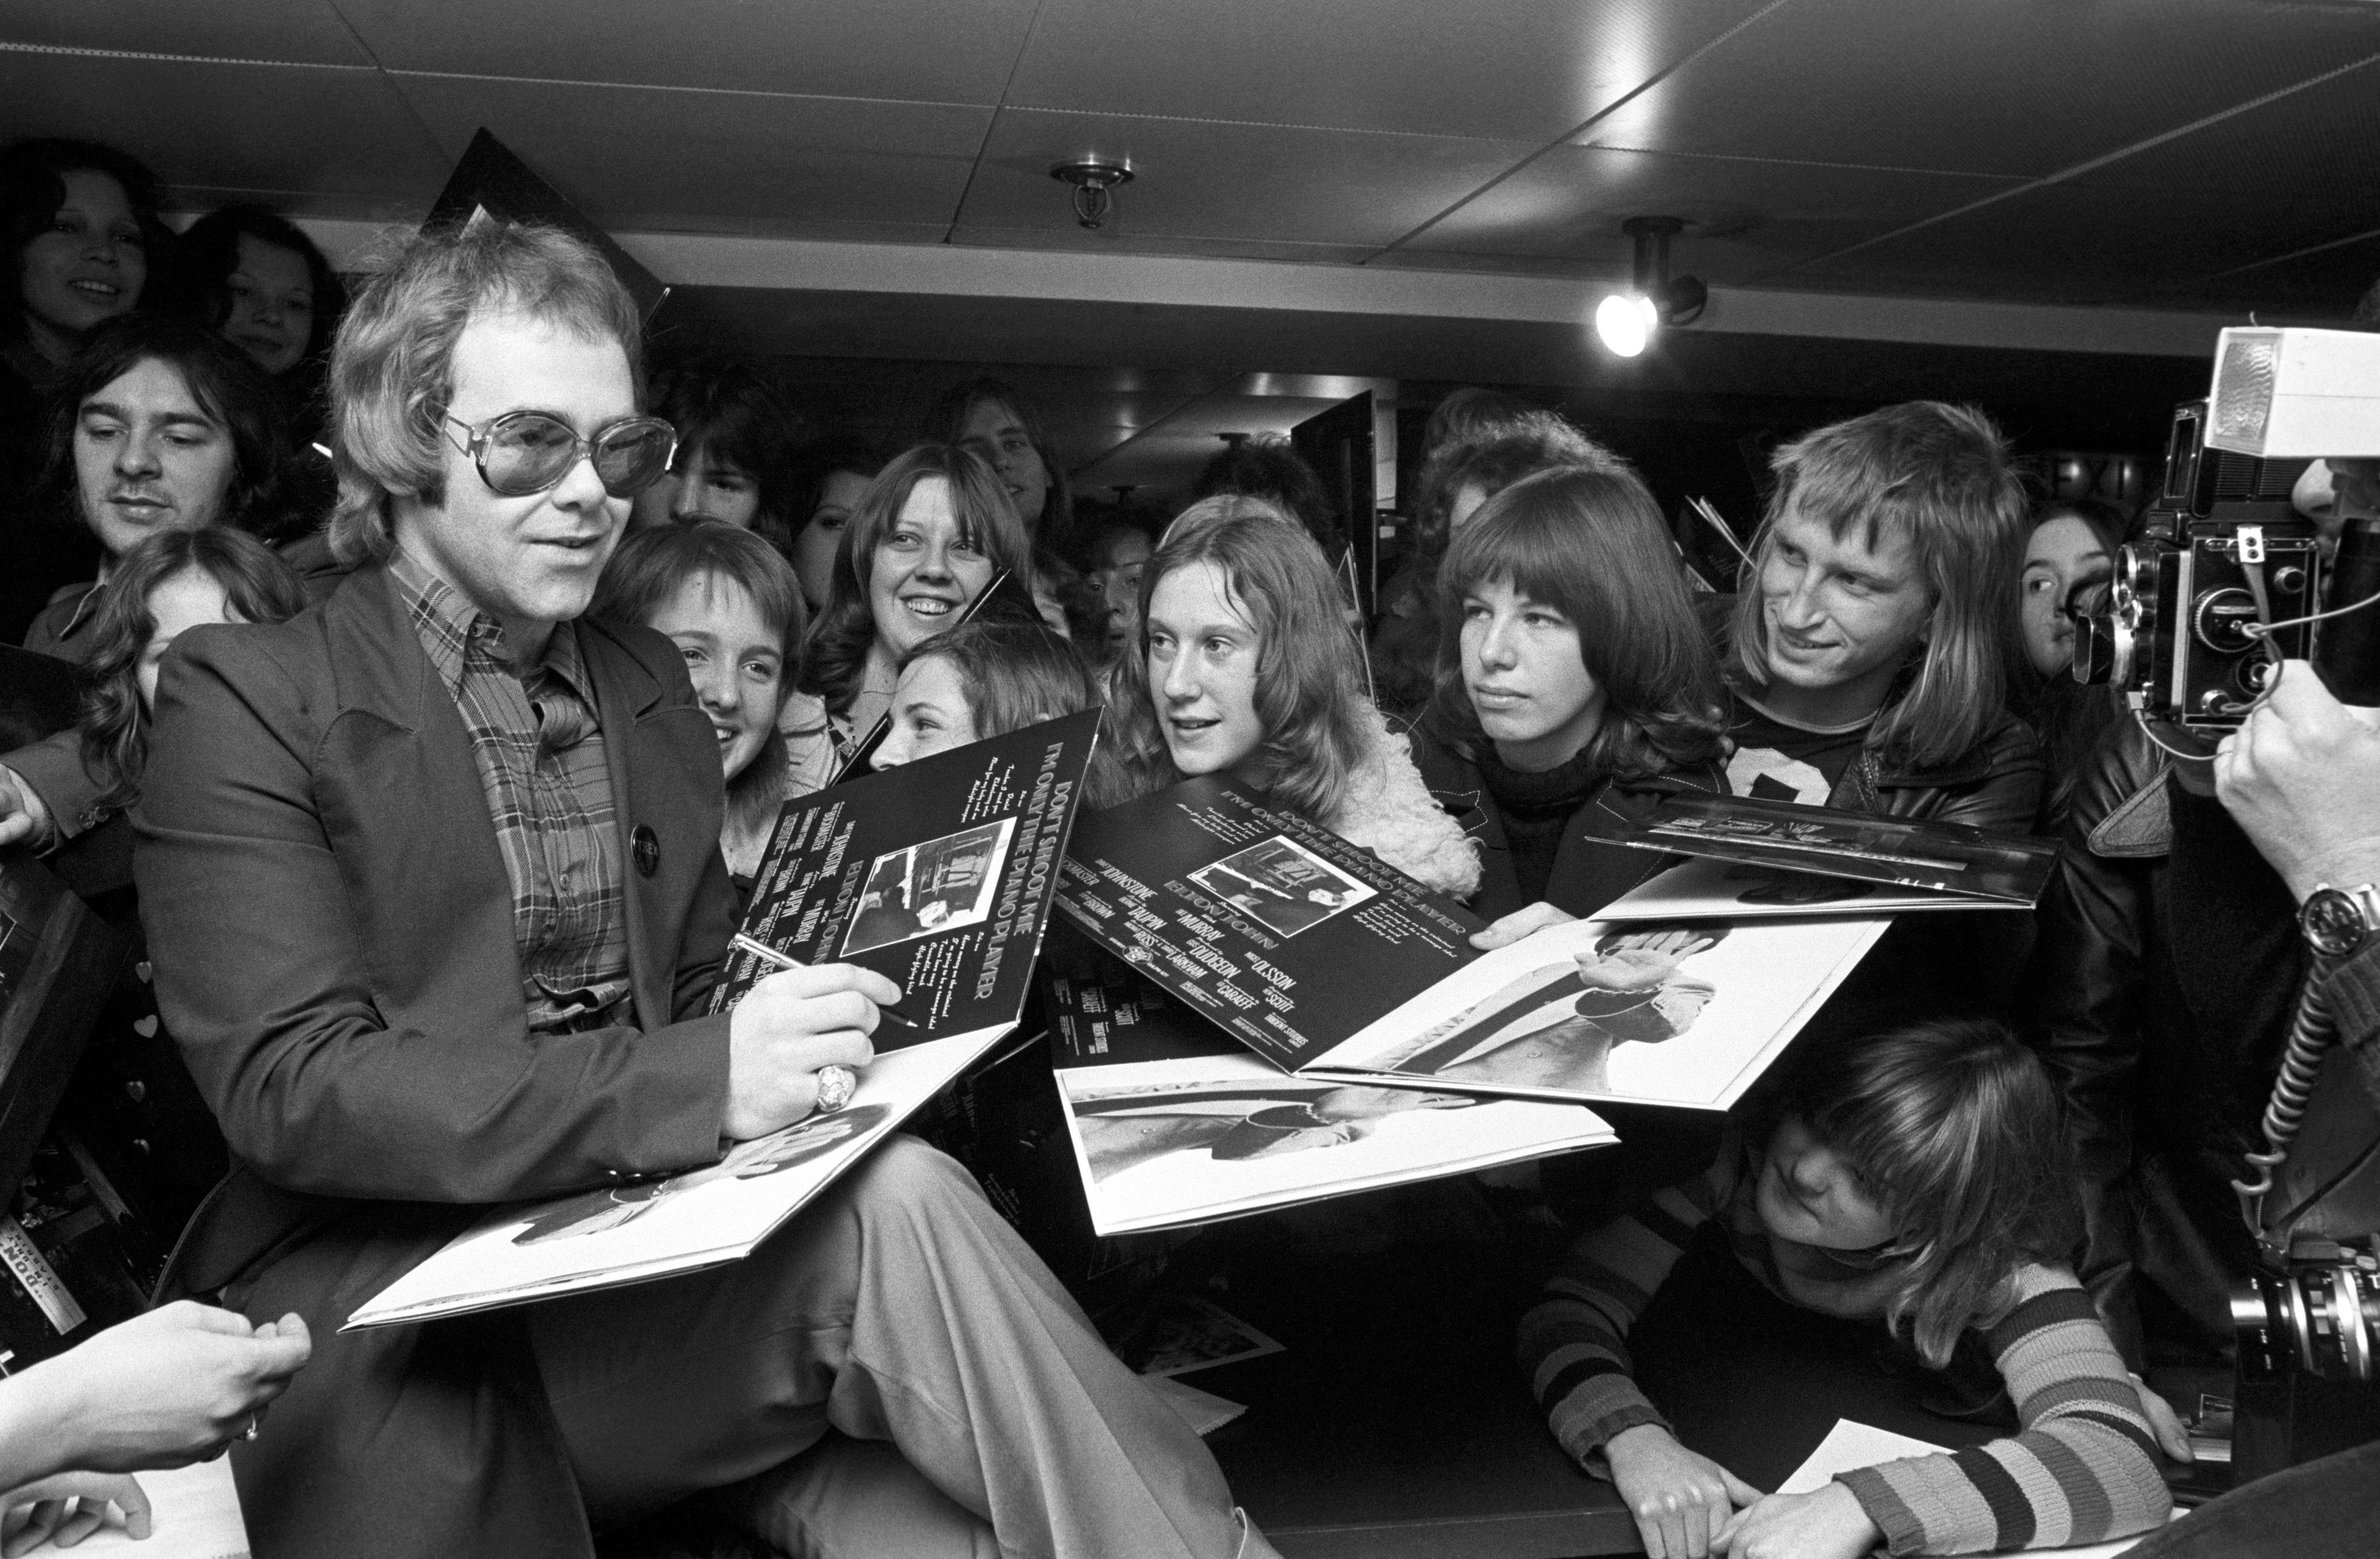 Elton John signs copies of his new album, 'Don't Shoot Me I'm Only The Piano Player' at the Noel Edmonds's Record Shop, Chelsea.